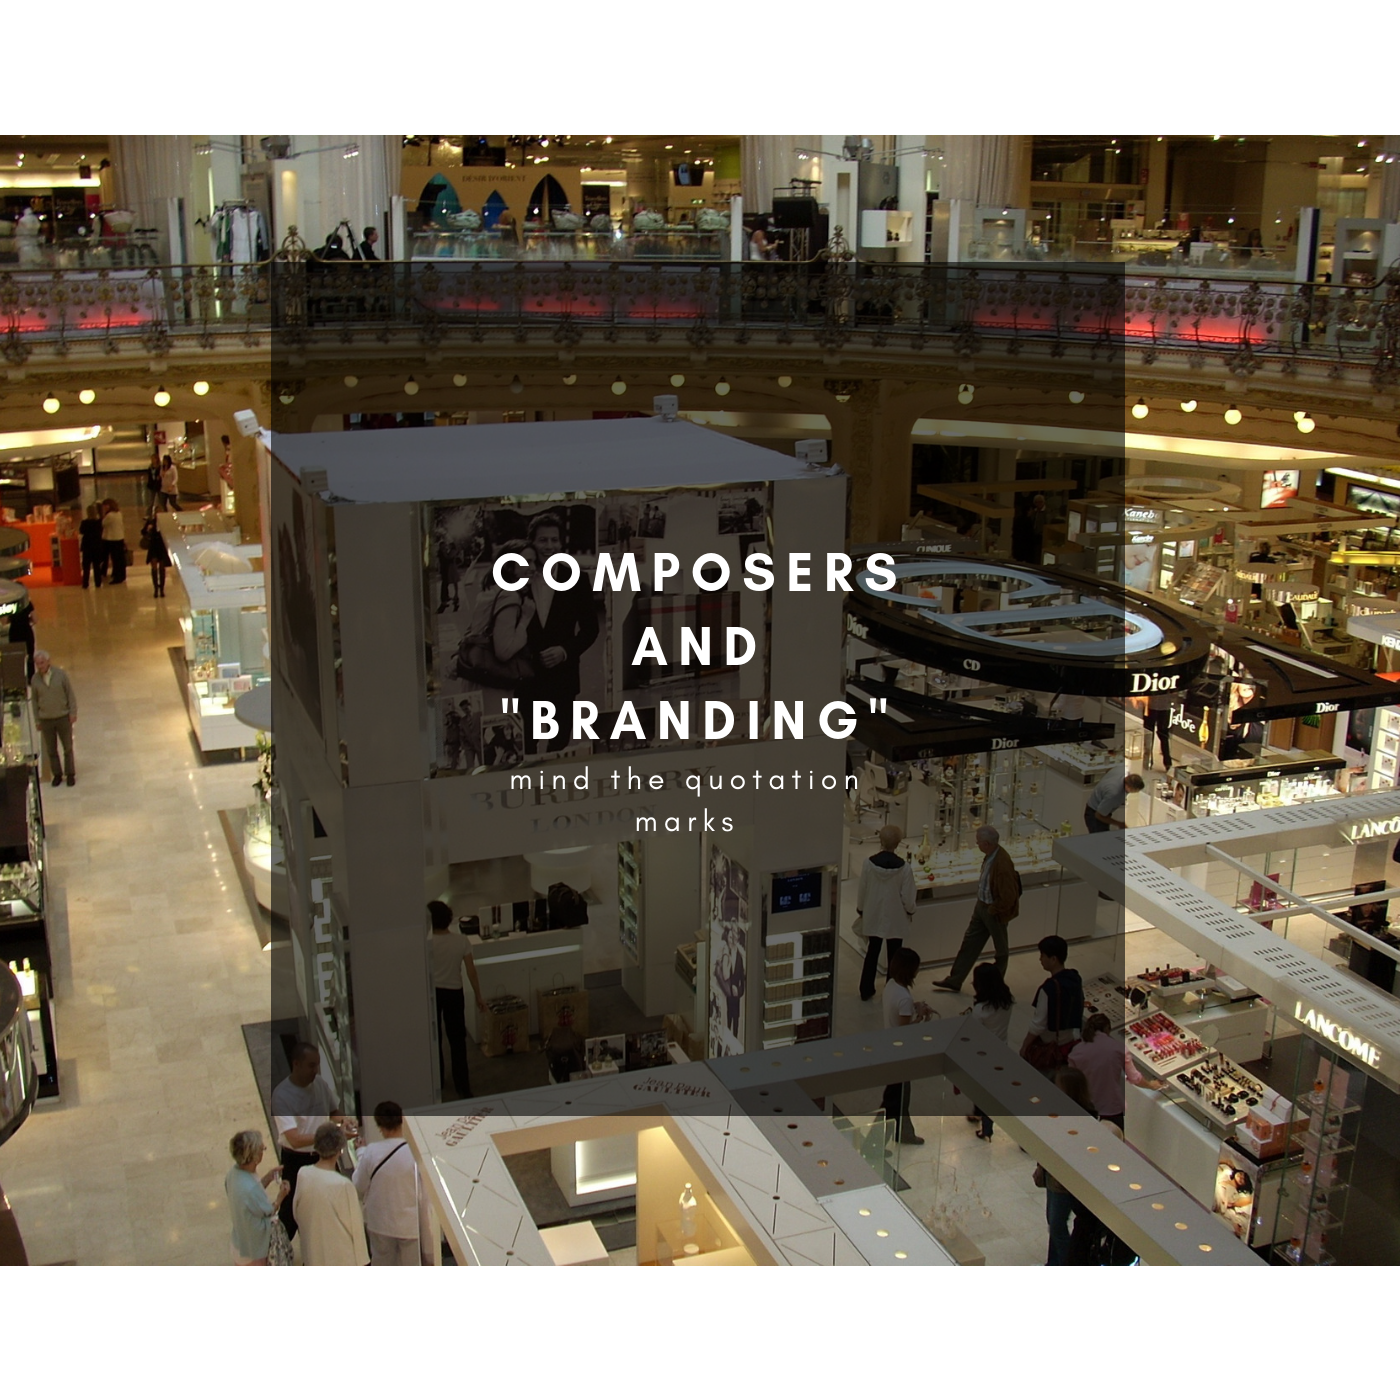 Composers and Branding - Alessandro Mastroianni's Blog